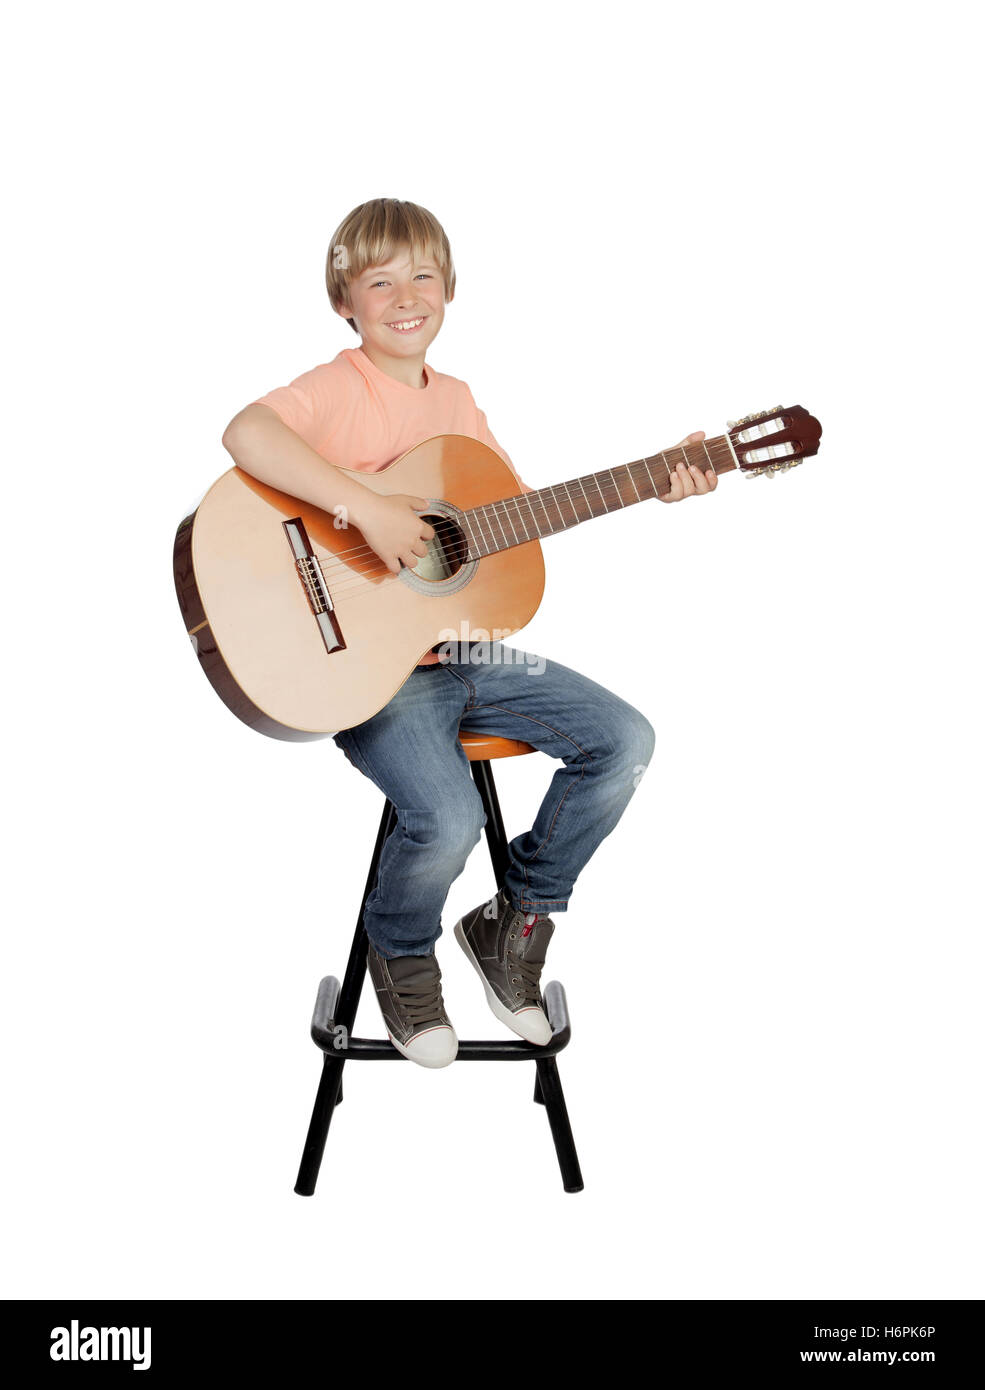 Smiling boy with a guitar isolated on white background - Stock Image